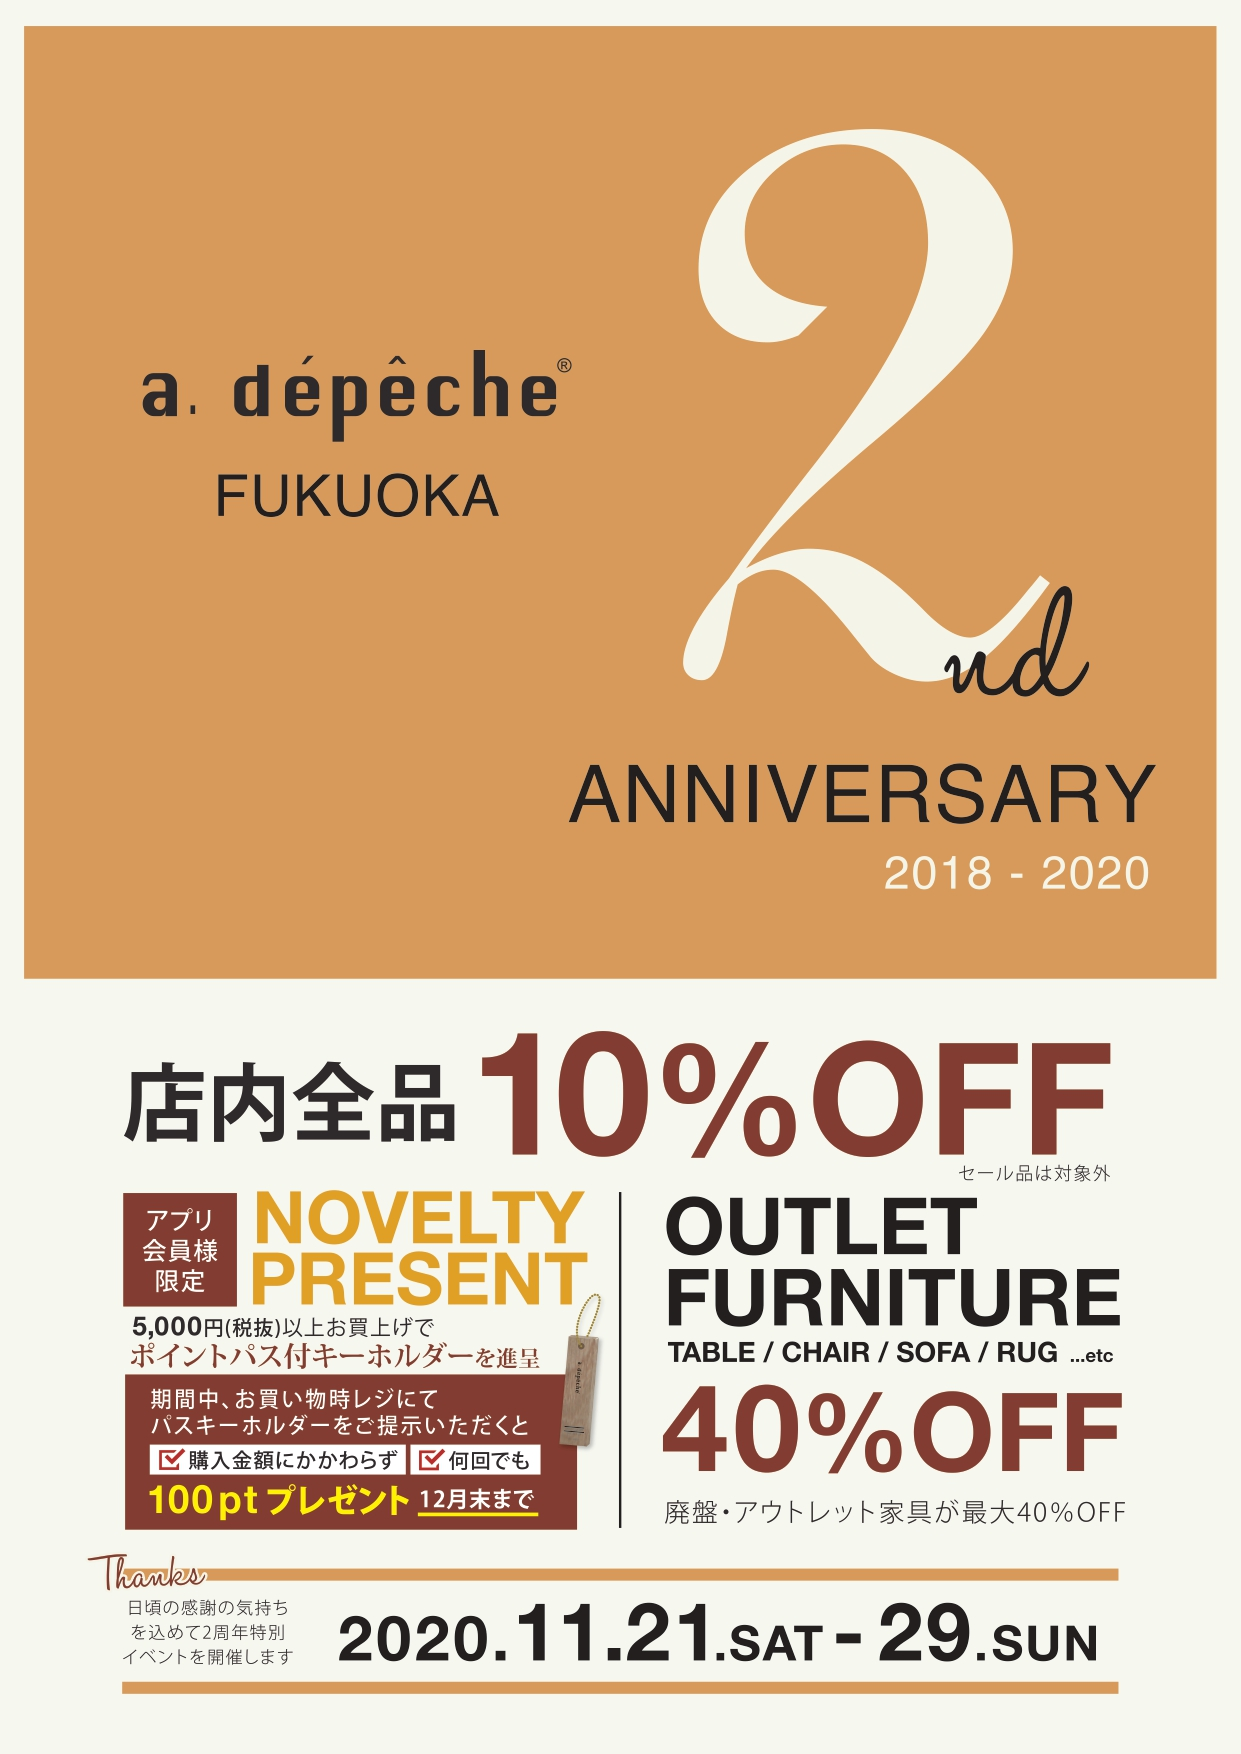 【a.depeche福岡店】おかげさまで2周年♪